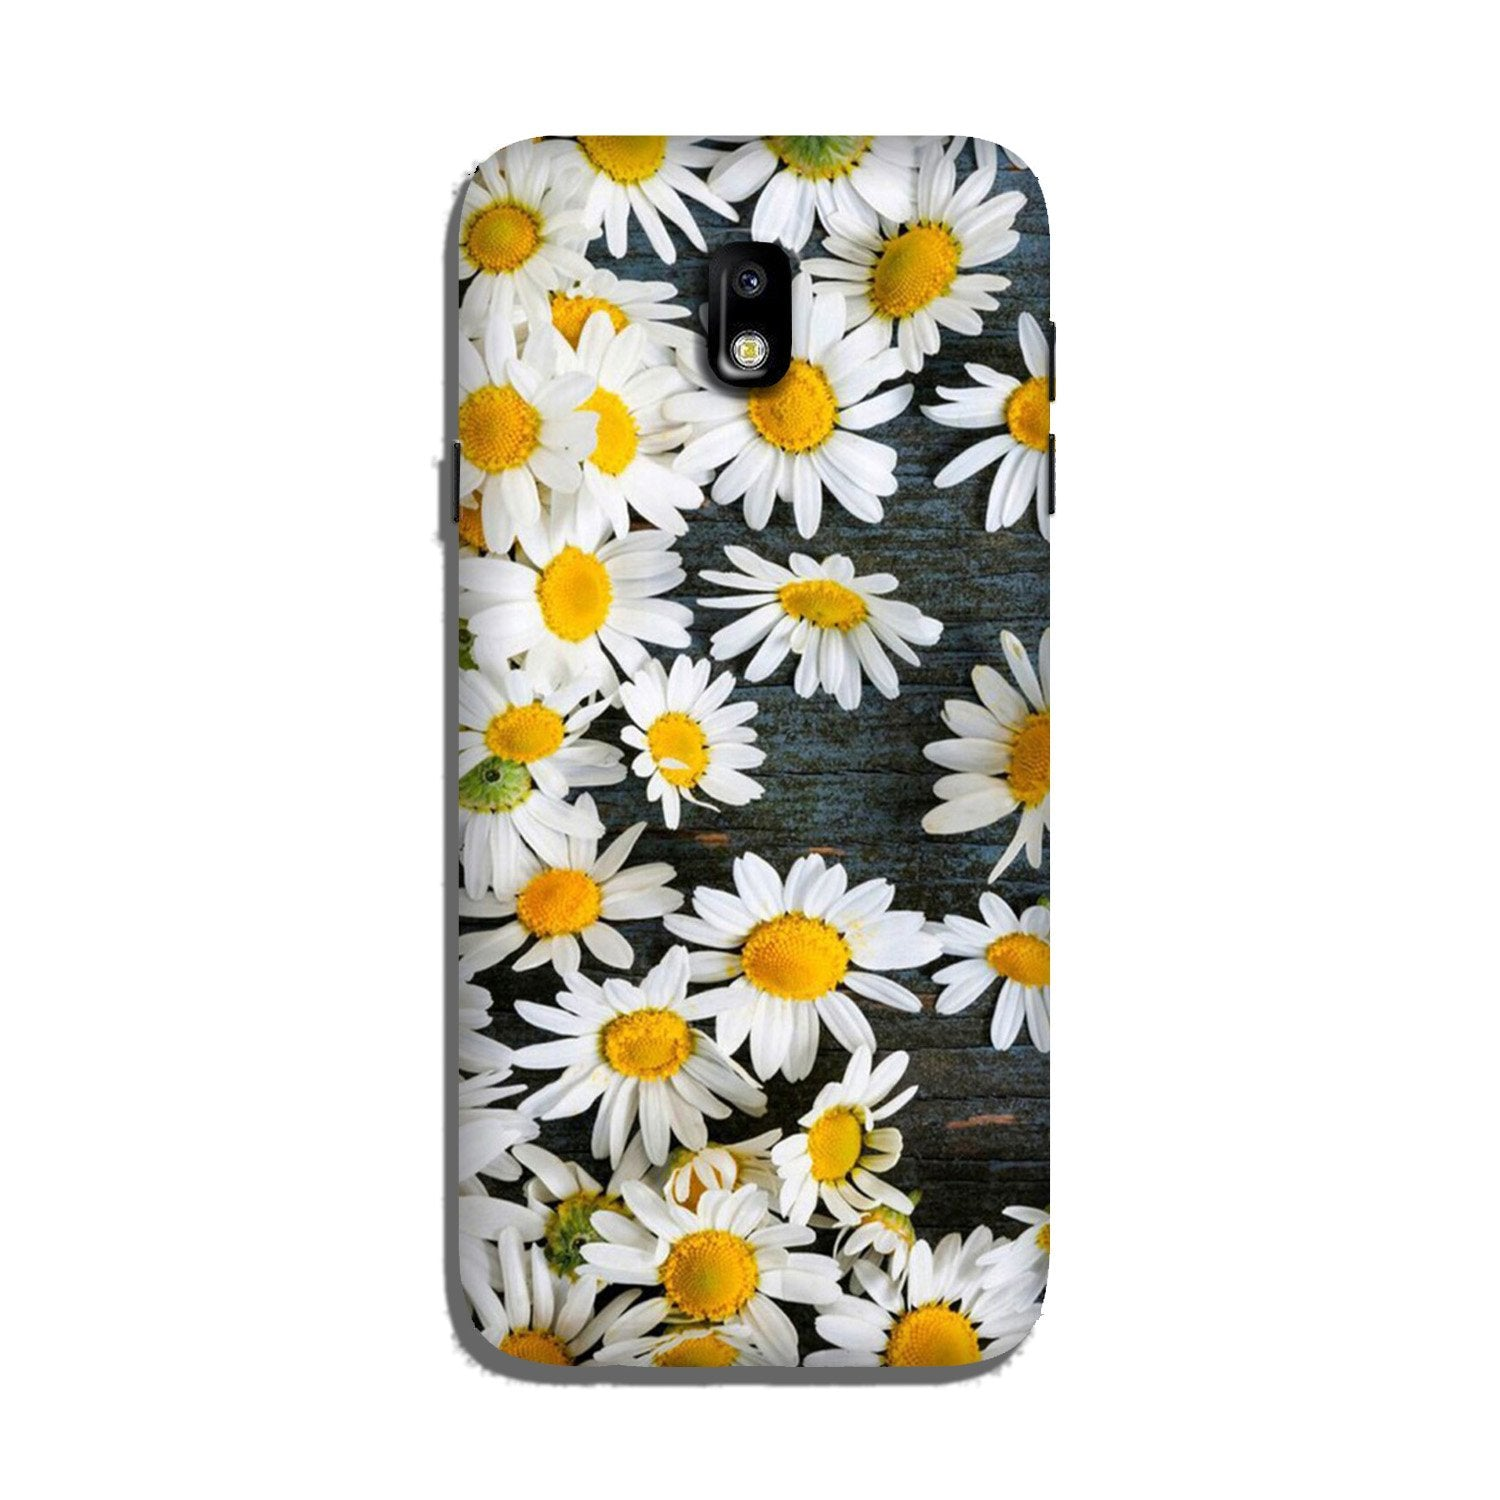 White flowers2 Case for Galaxy J5 Pro